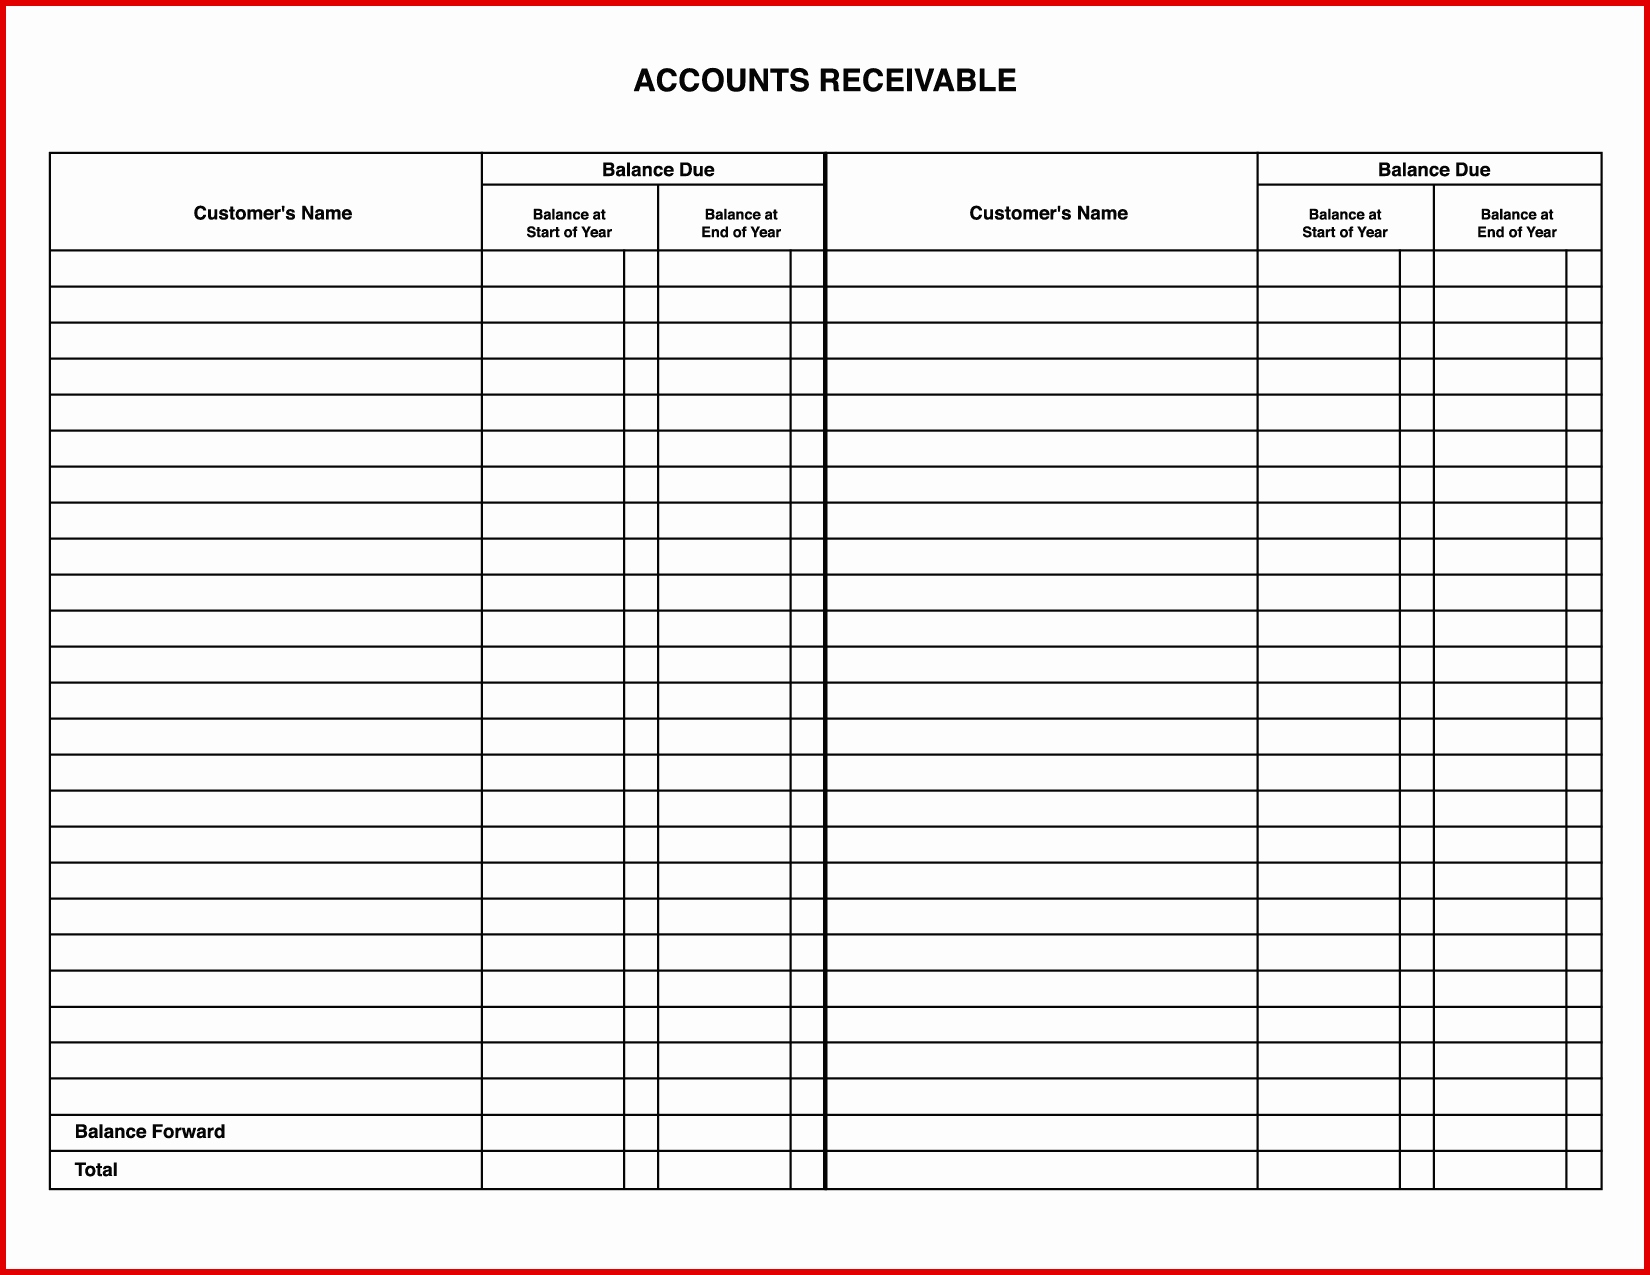 Excel Accountingeet Pdf Templates Business Ratios Exercise Free And Accounting Spreadsheet In Pdf